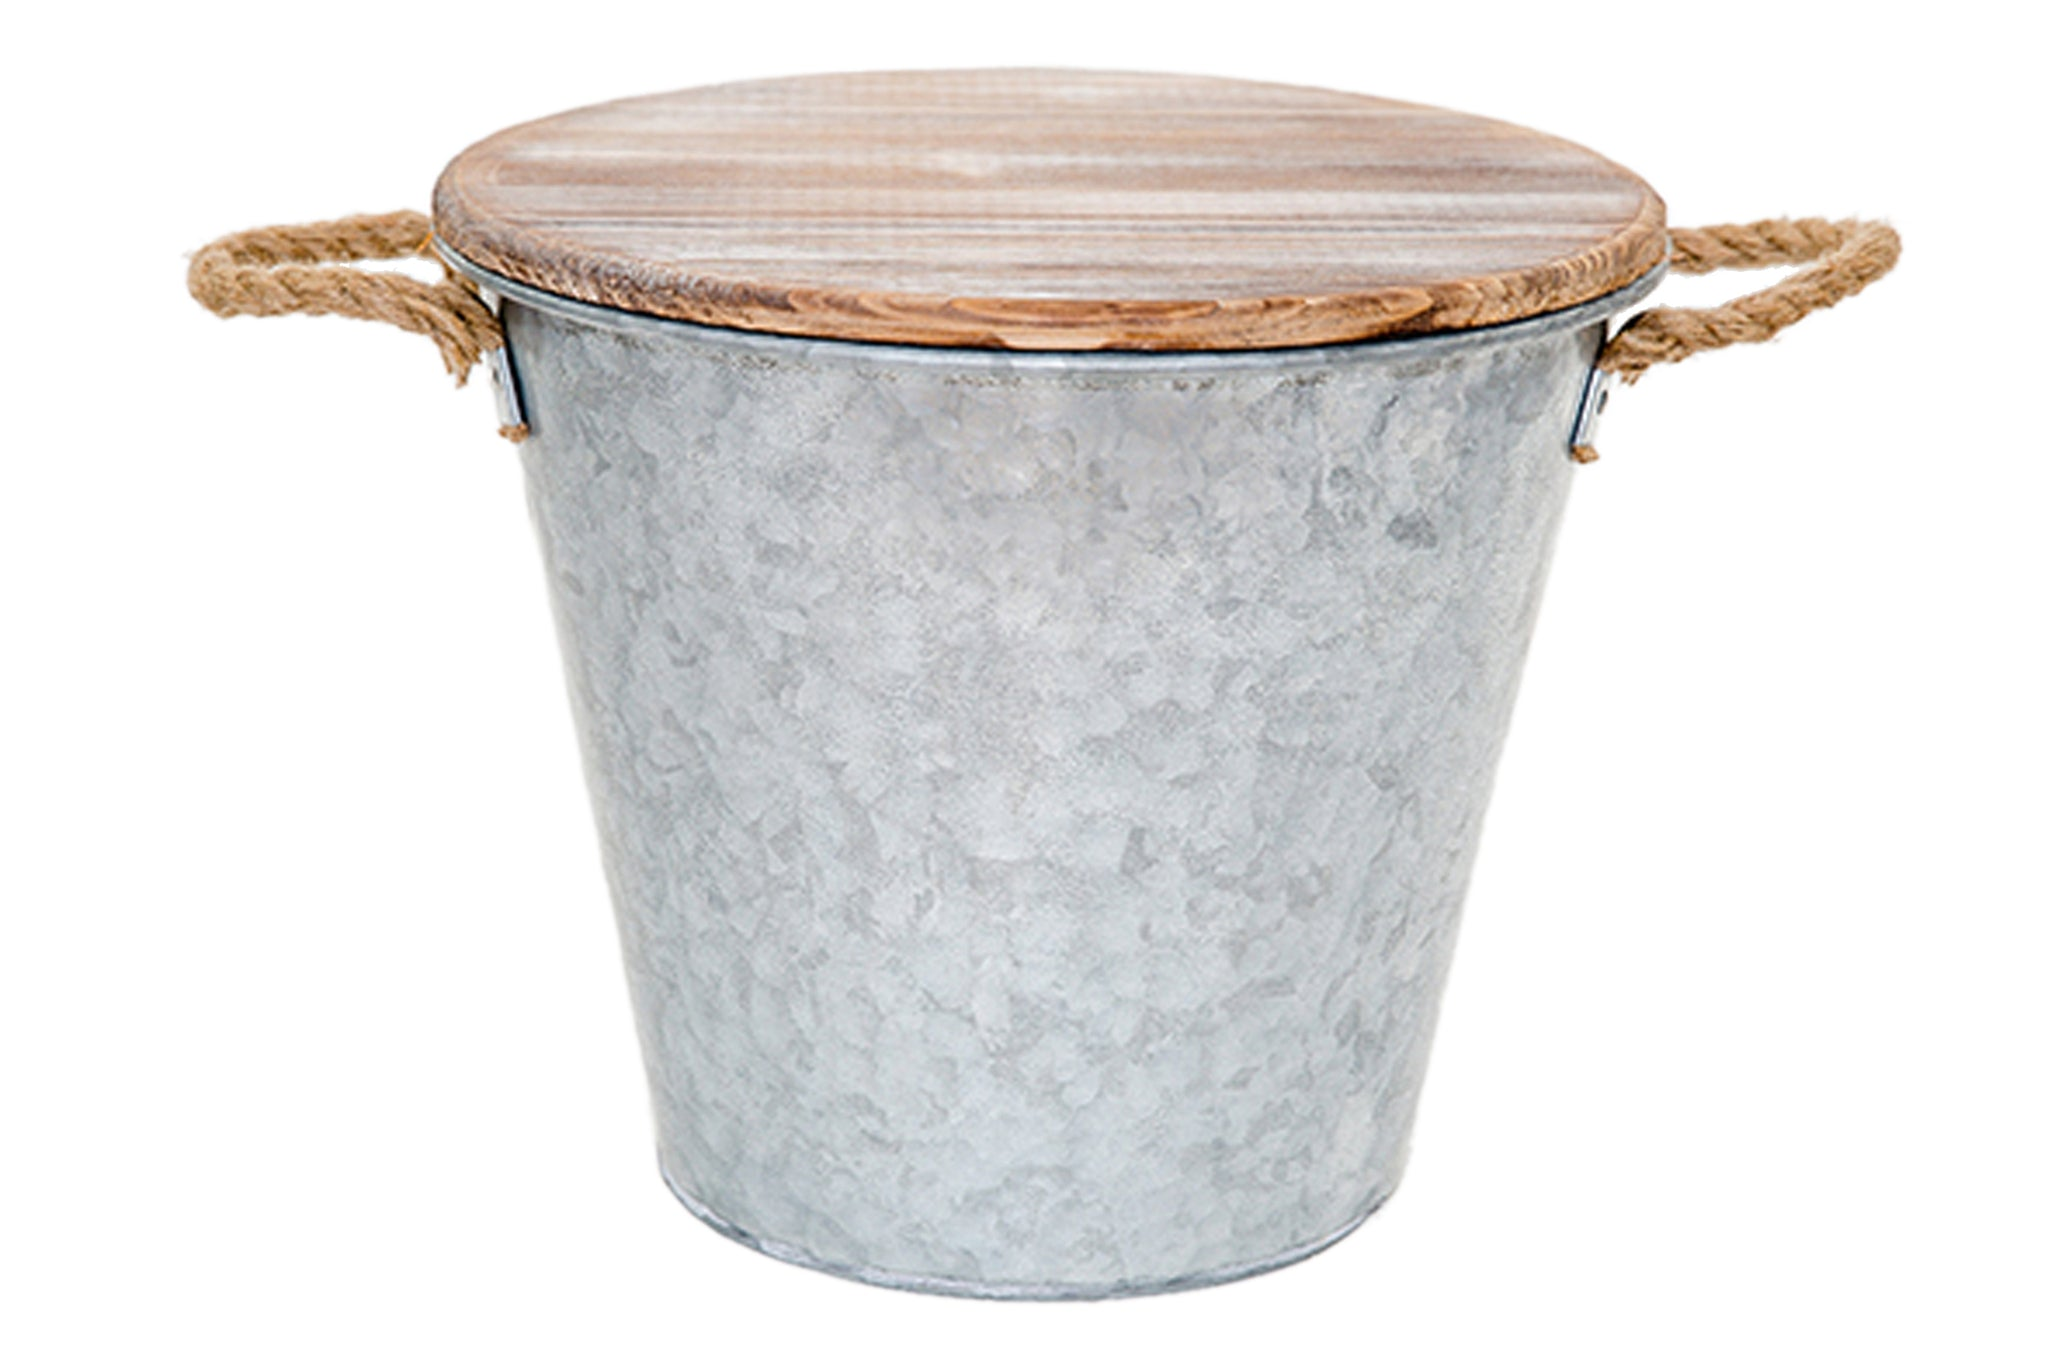 80 oz. 3 Wick Giant Farmhouse Bucket Citronella Candle | Patio Essentials